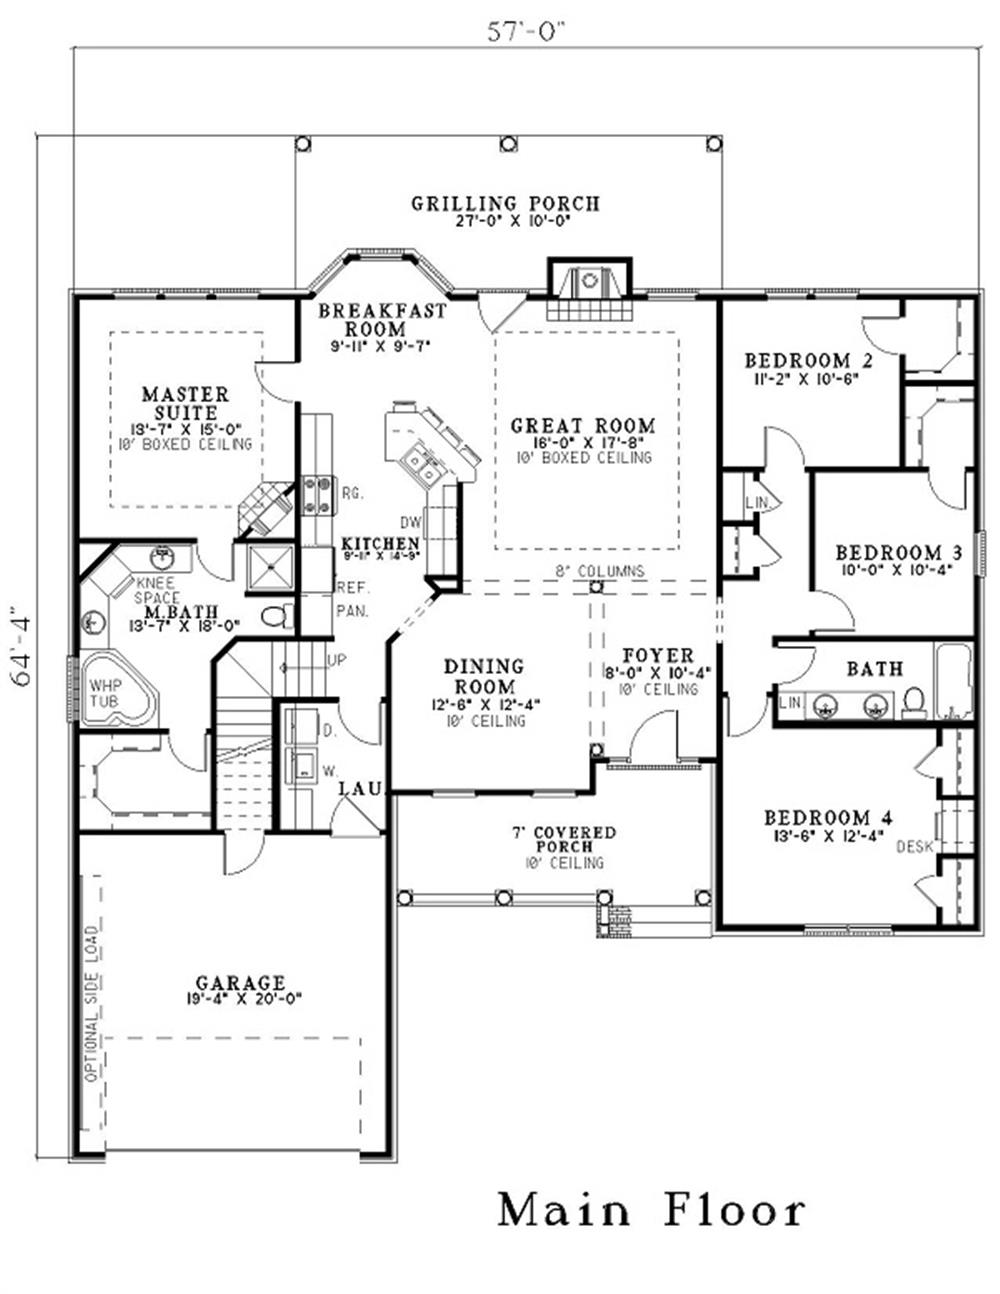 House Floor Plans with Dimensions House Floor Plans with Dimensions